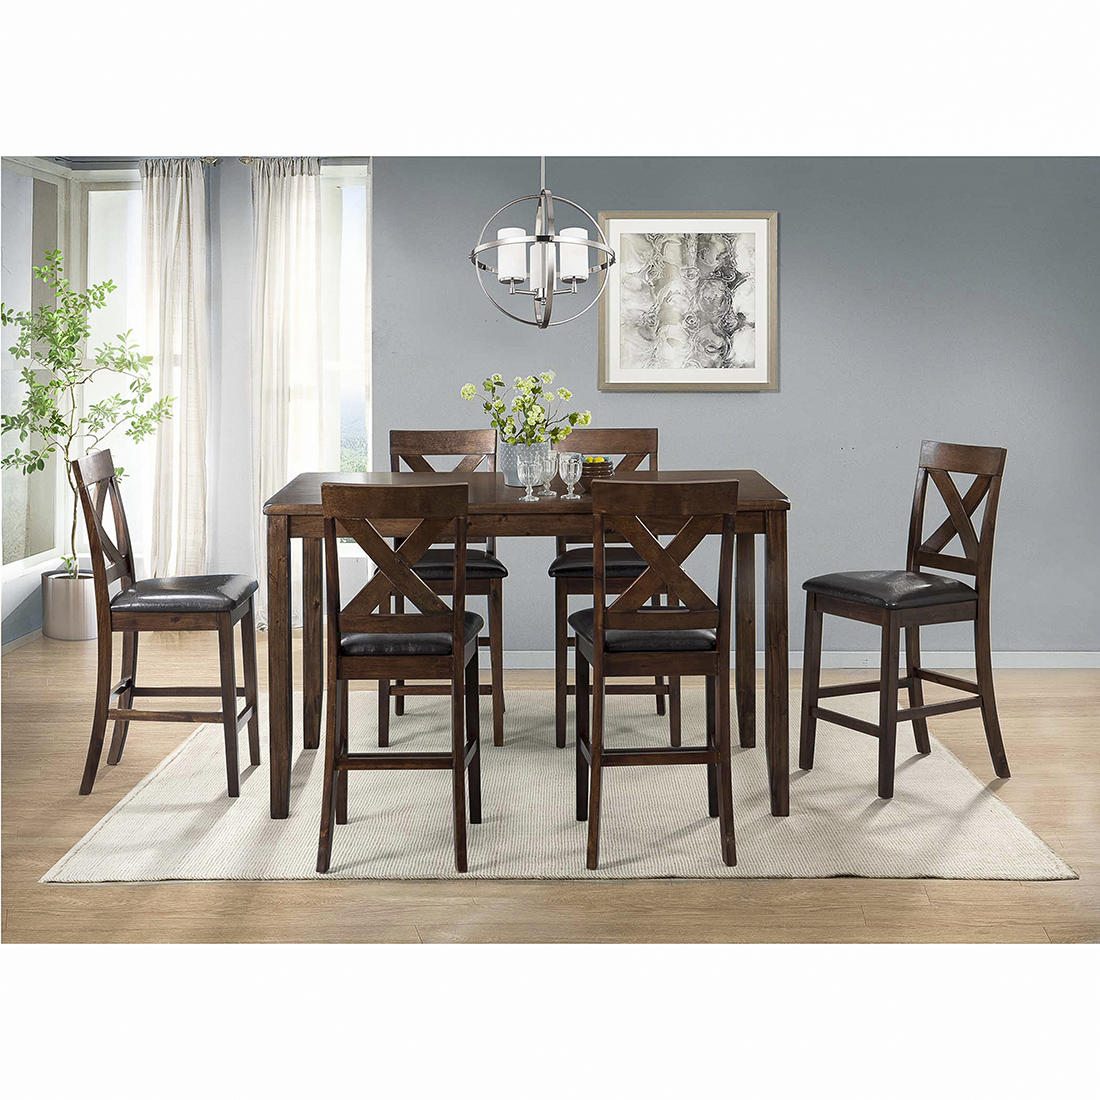 7 Piece Pub Height Dining Sets